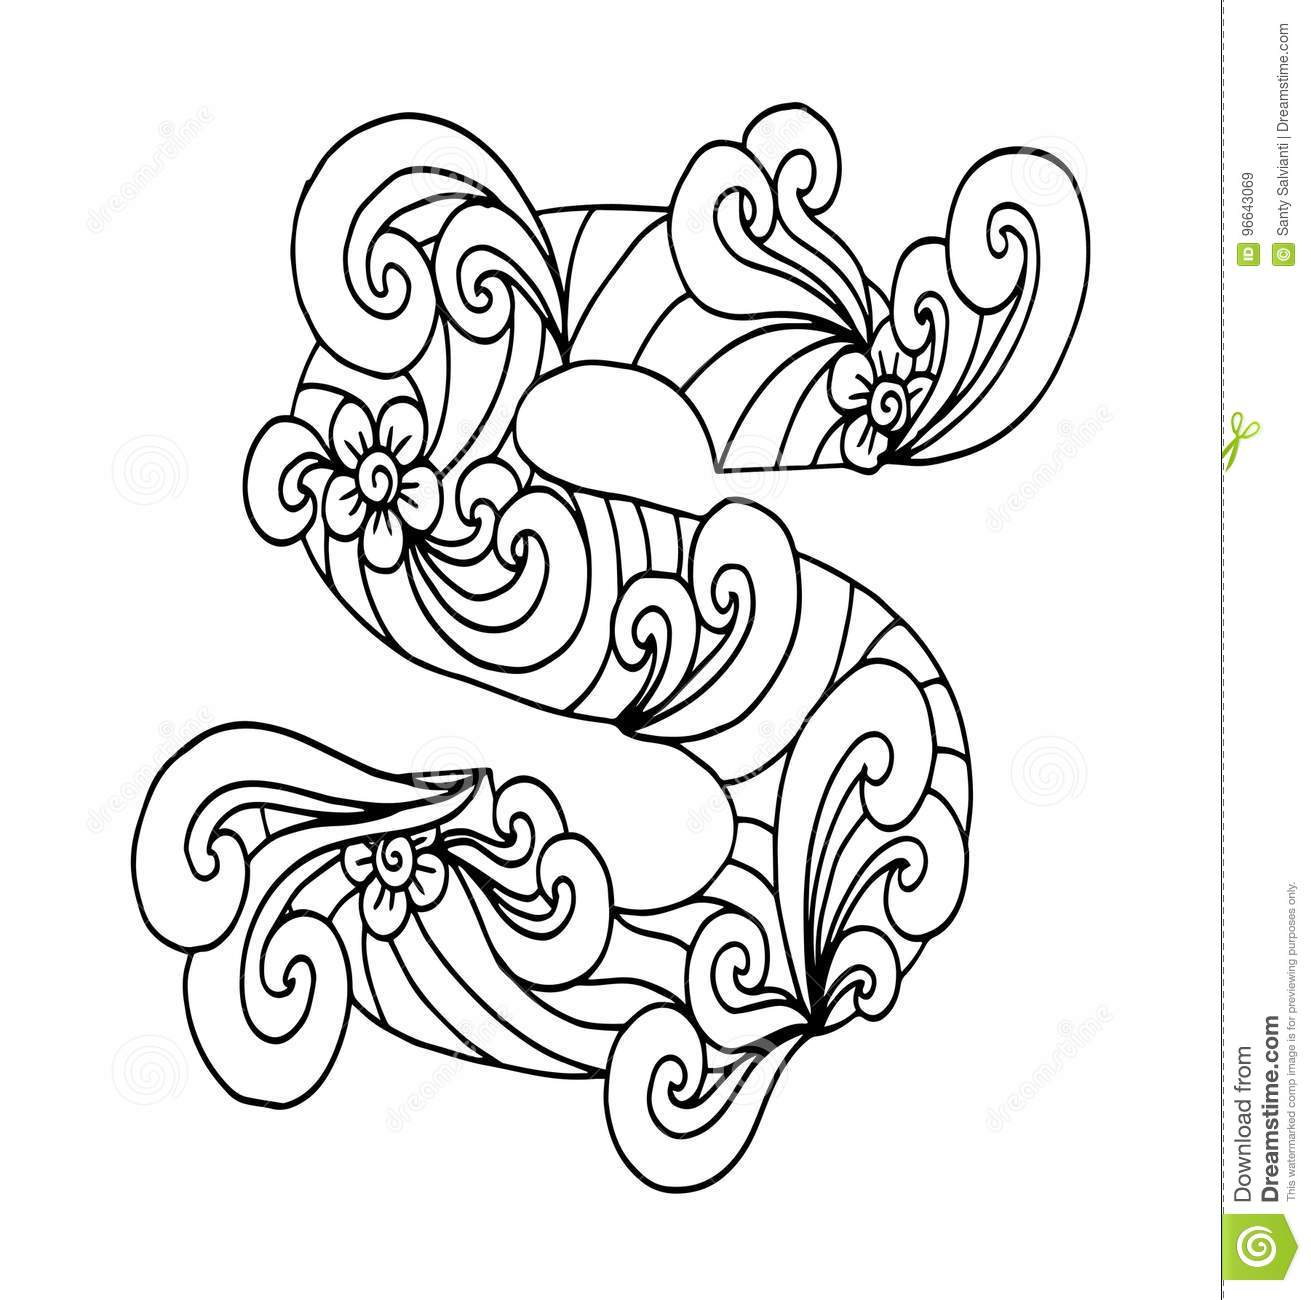 Zentangle Stylized Alphabet. Letter S In Doodle Style